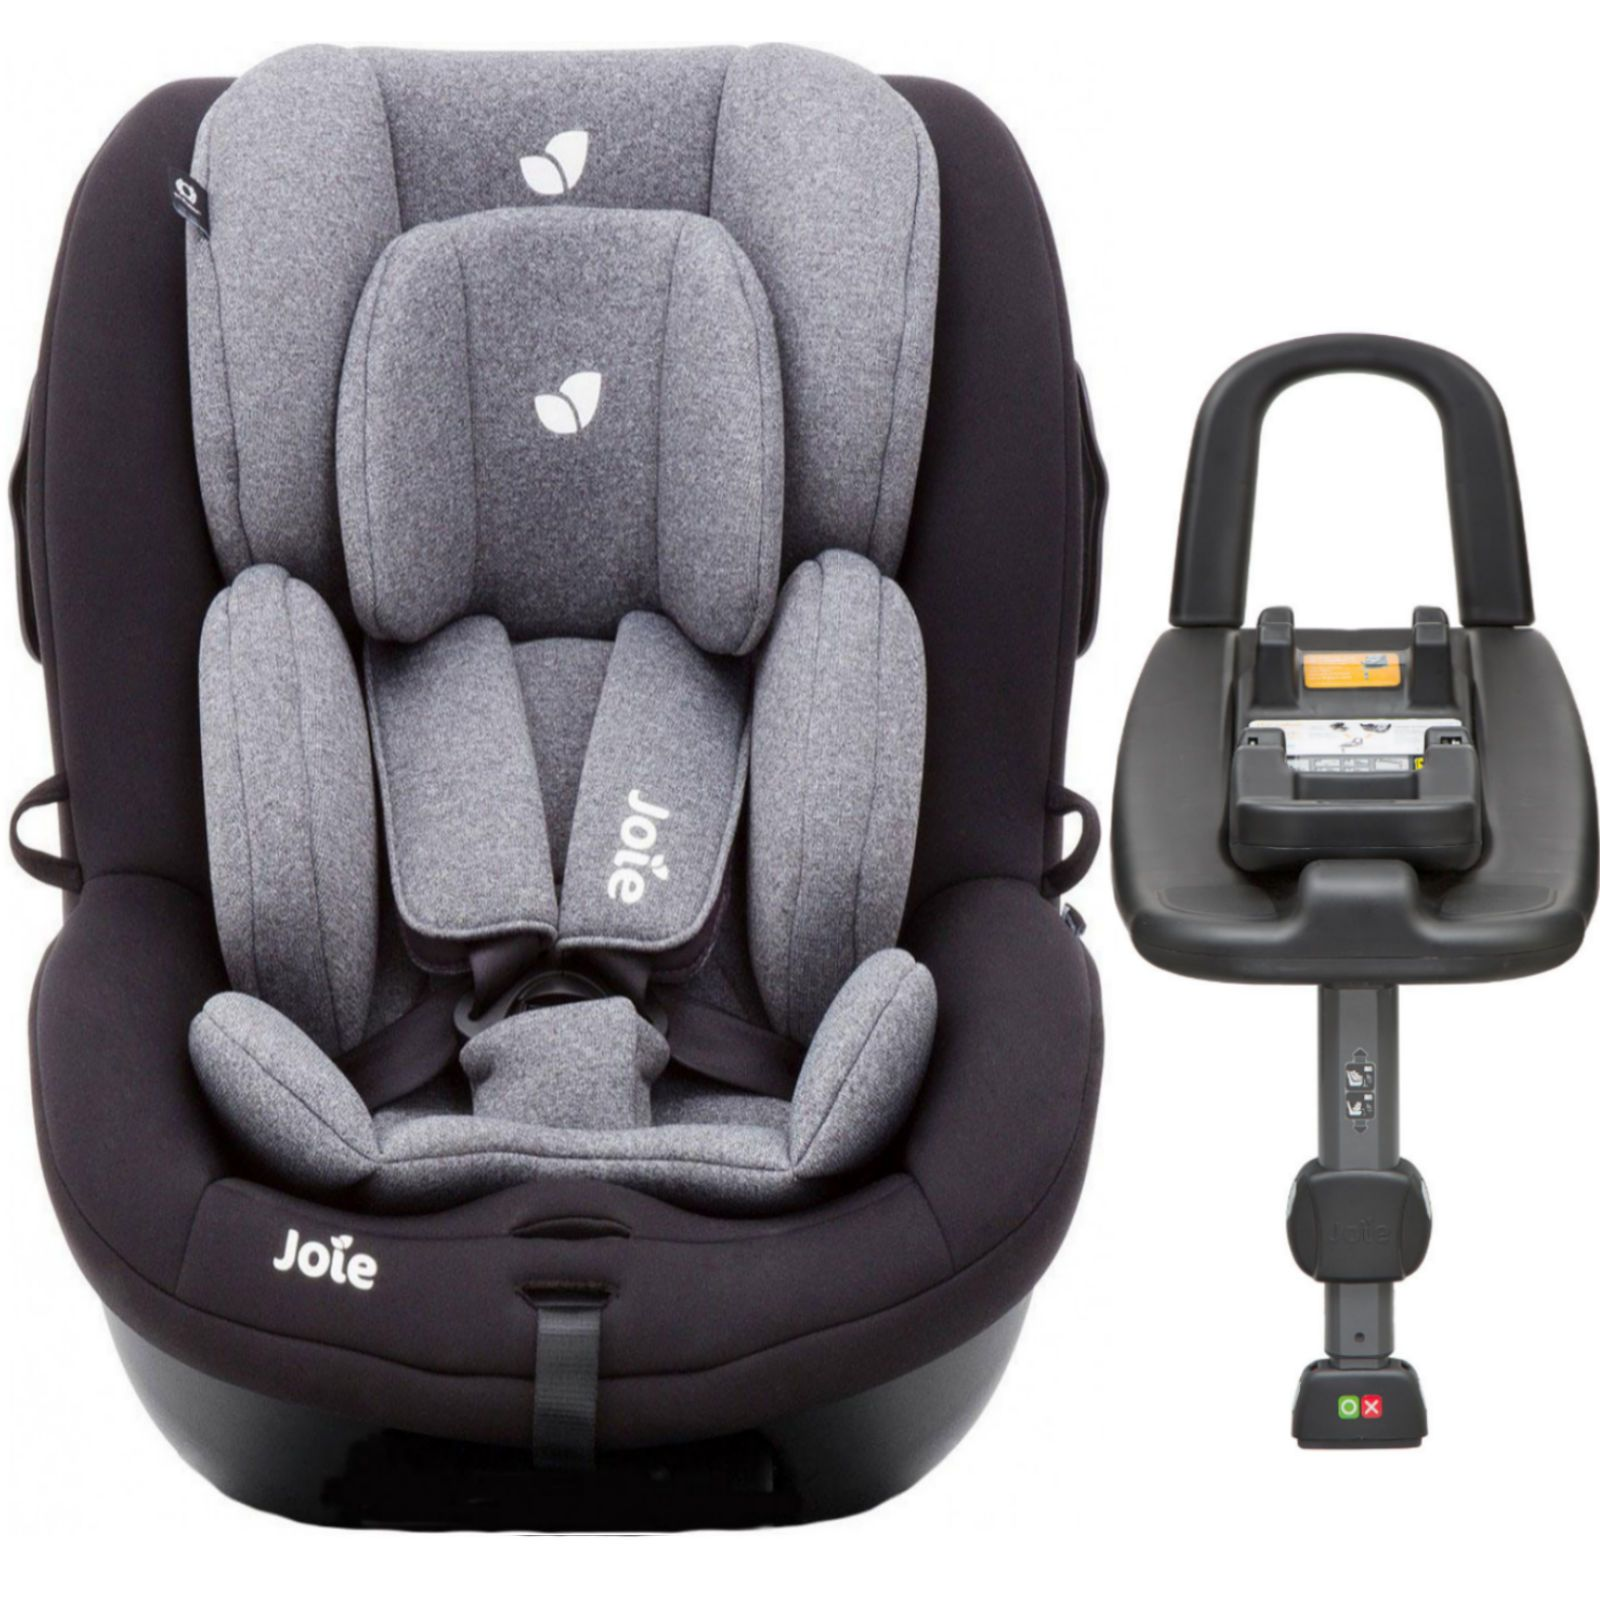 Joie Isofix Base Uk Joie I Anchor Advance Group 1 Baby Car Seat And Isofix